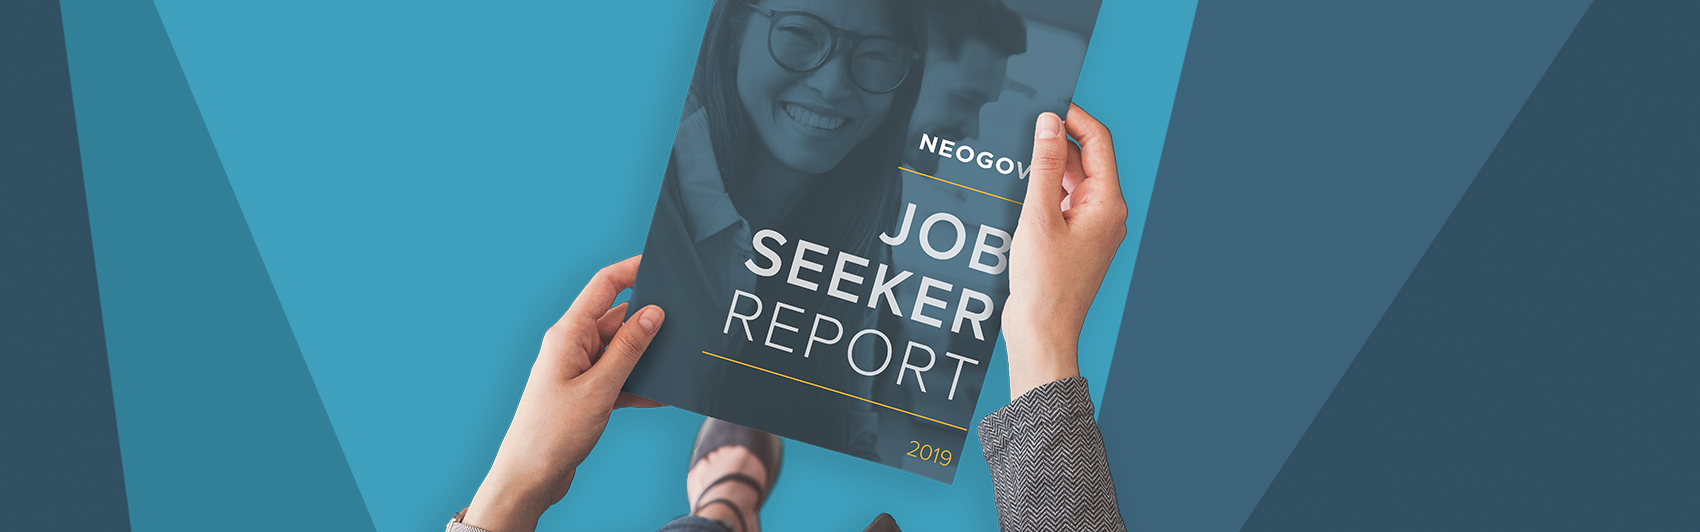 NEOGOV Releases 2019 Job Seeker Report